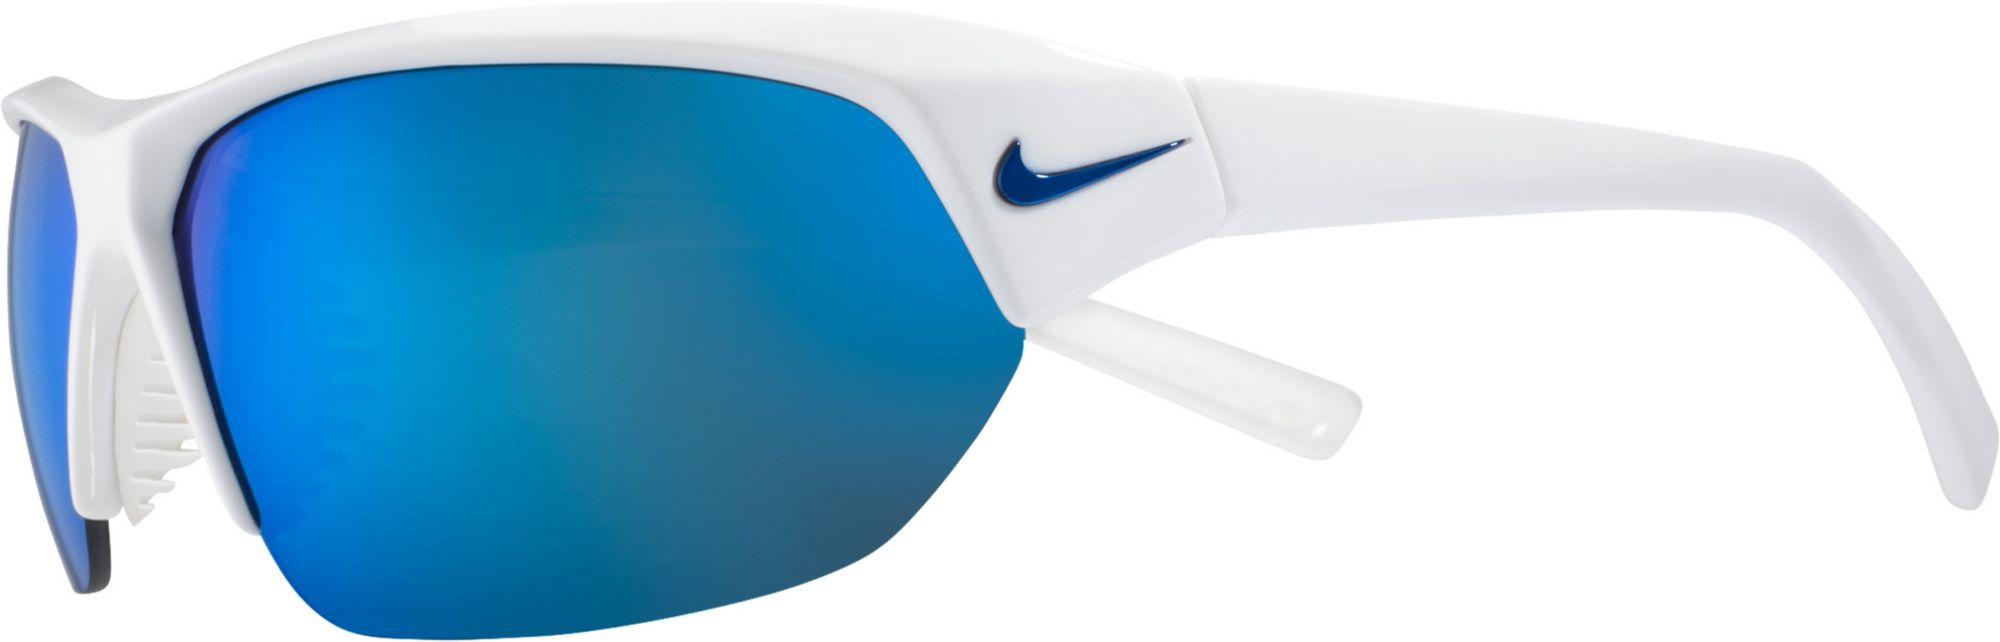 Best Sunglasses in Golf - Nike Skylon Ace